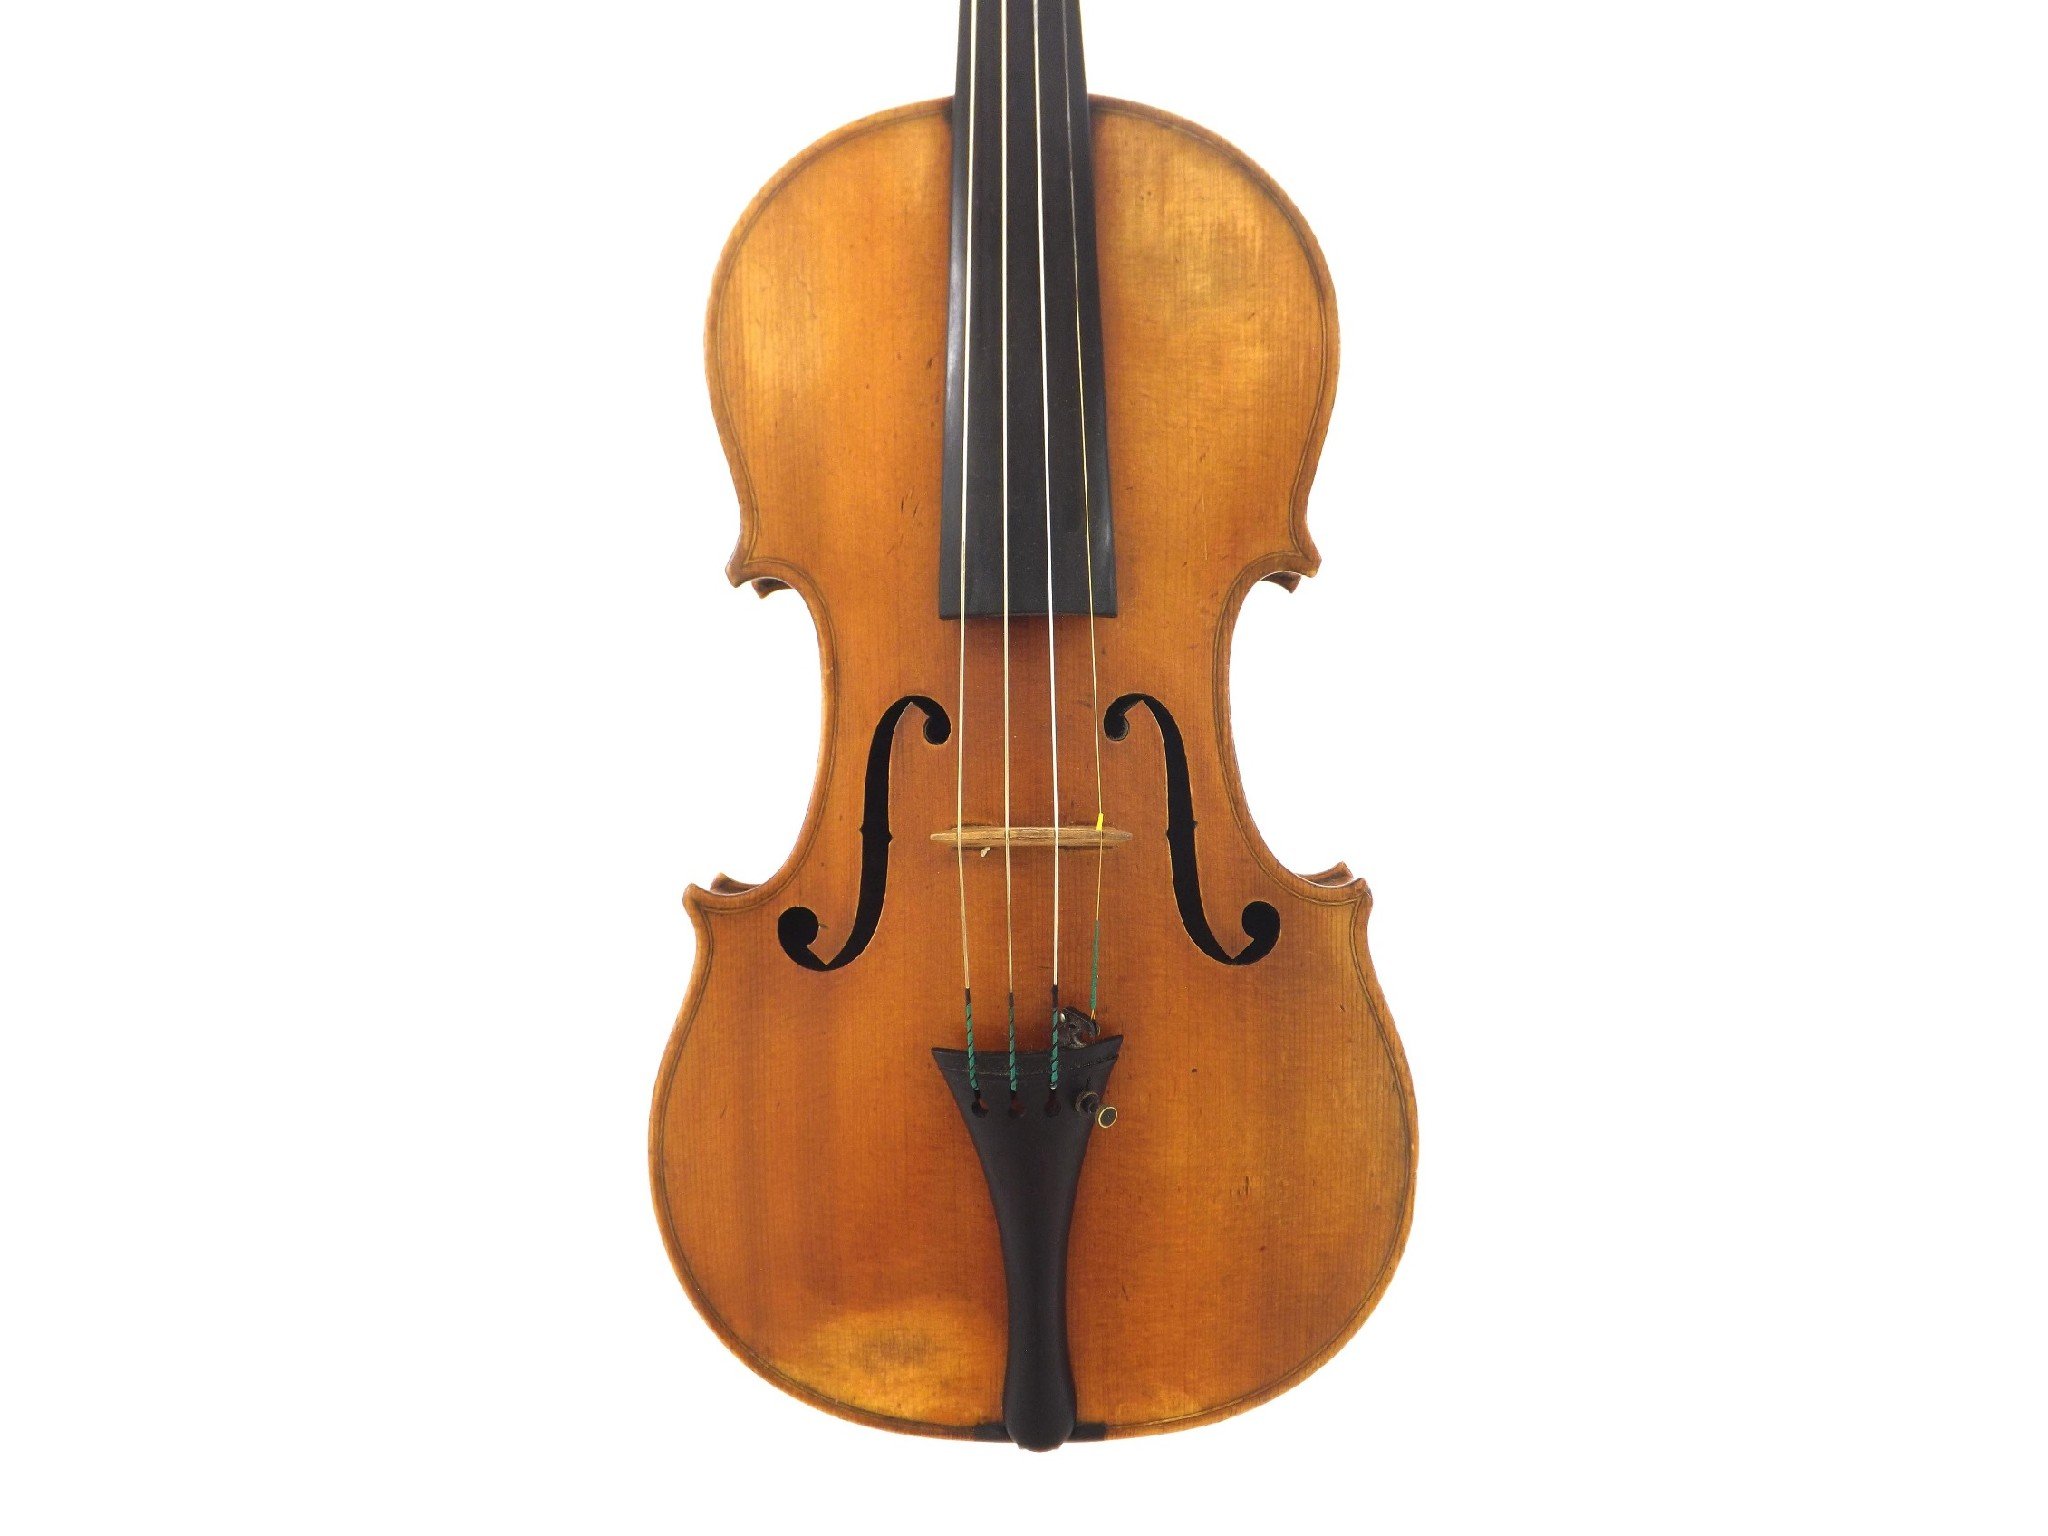 English violin by and labelled Made by G.A.